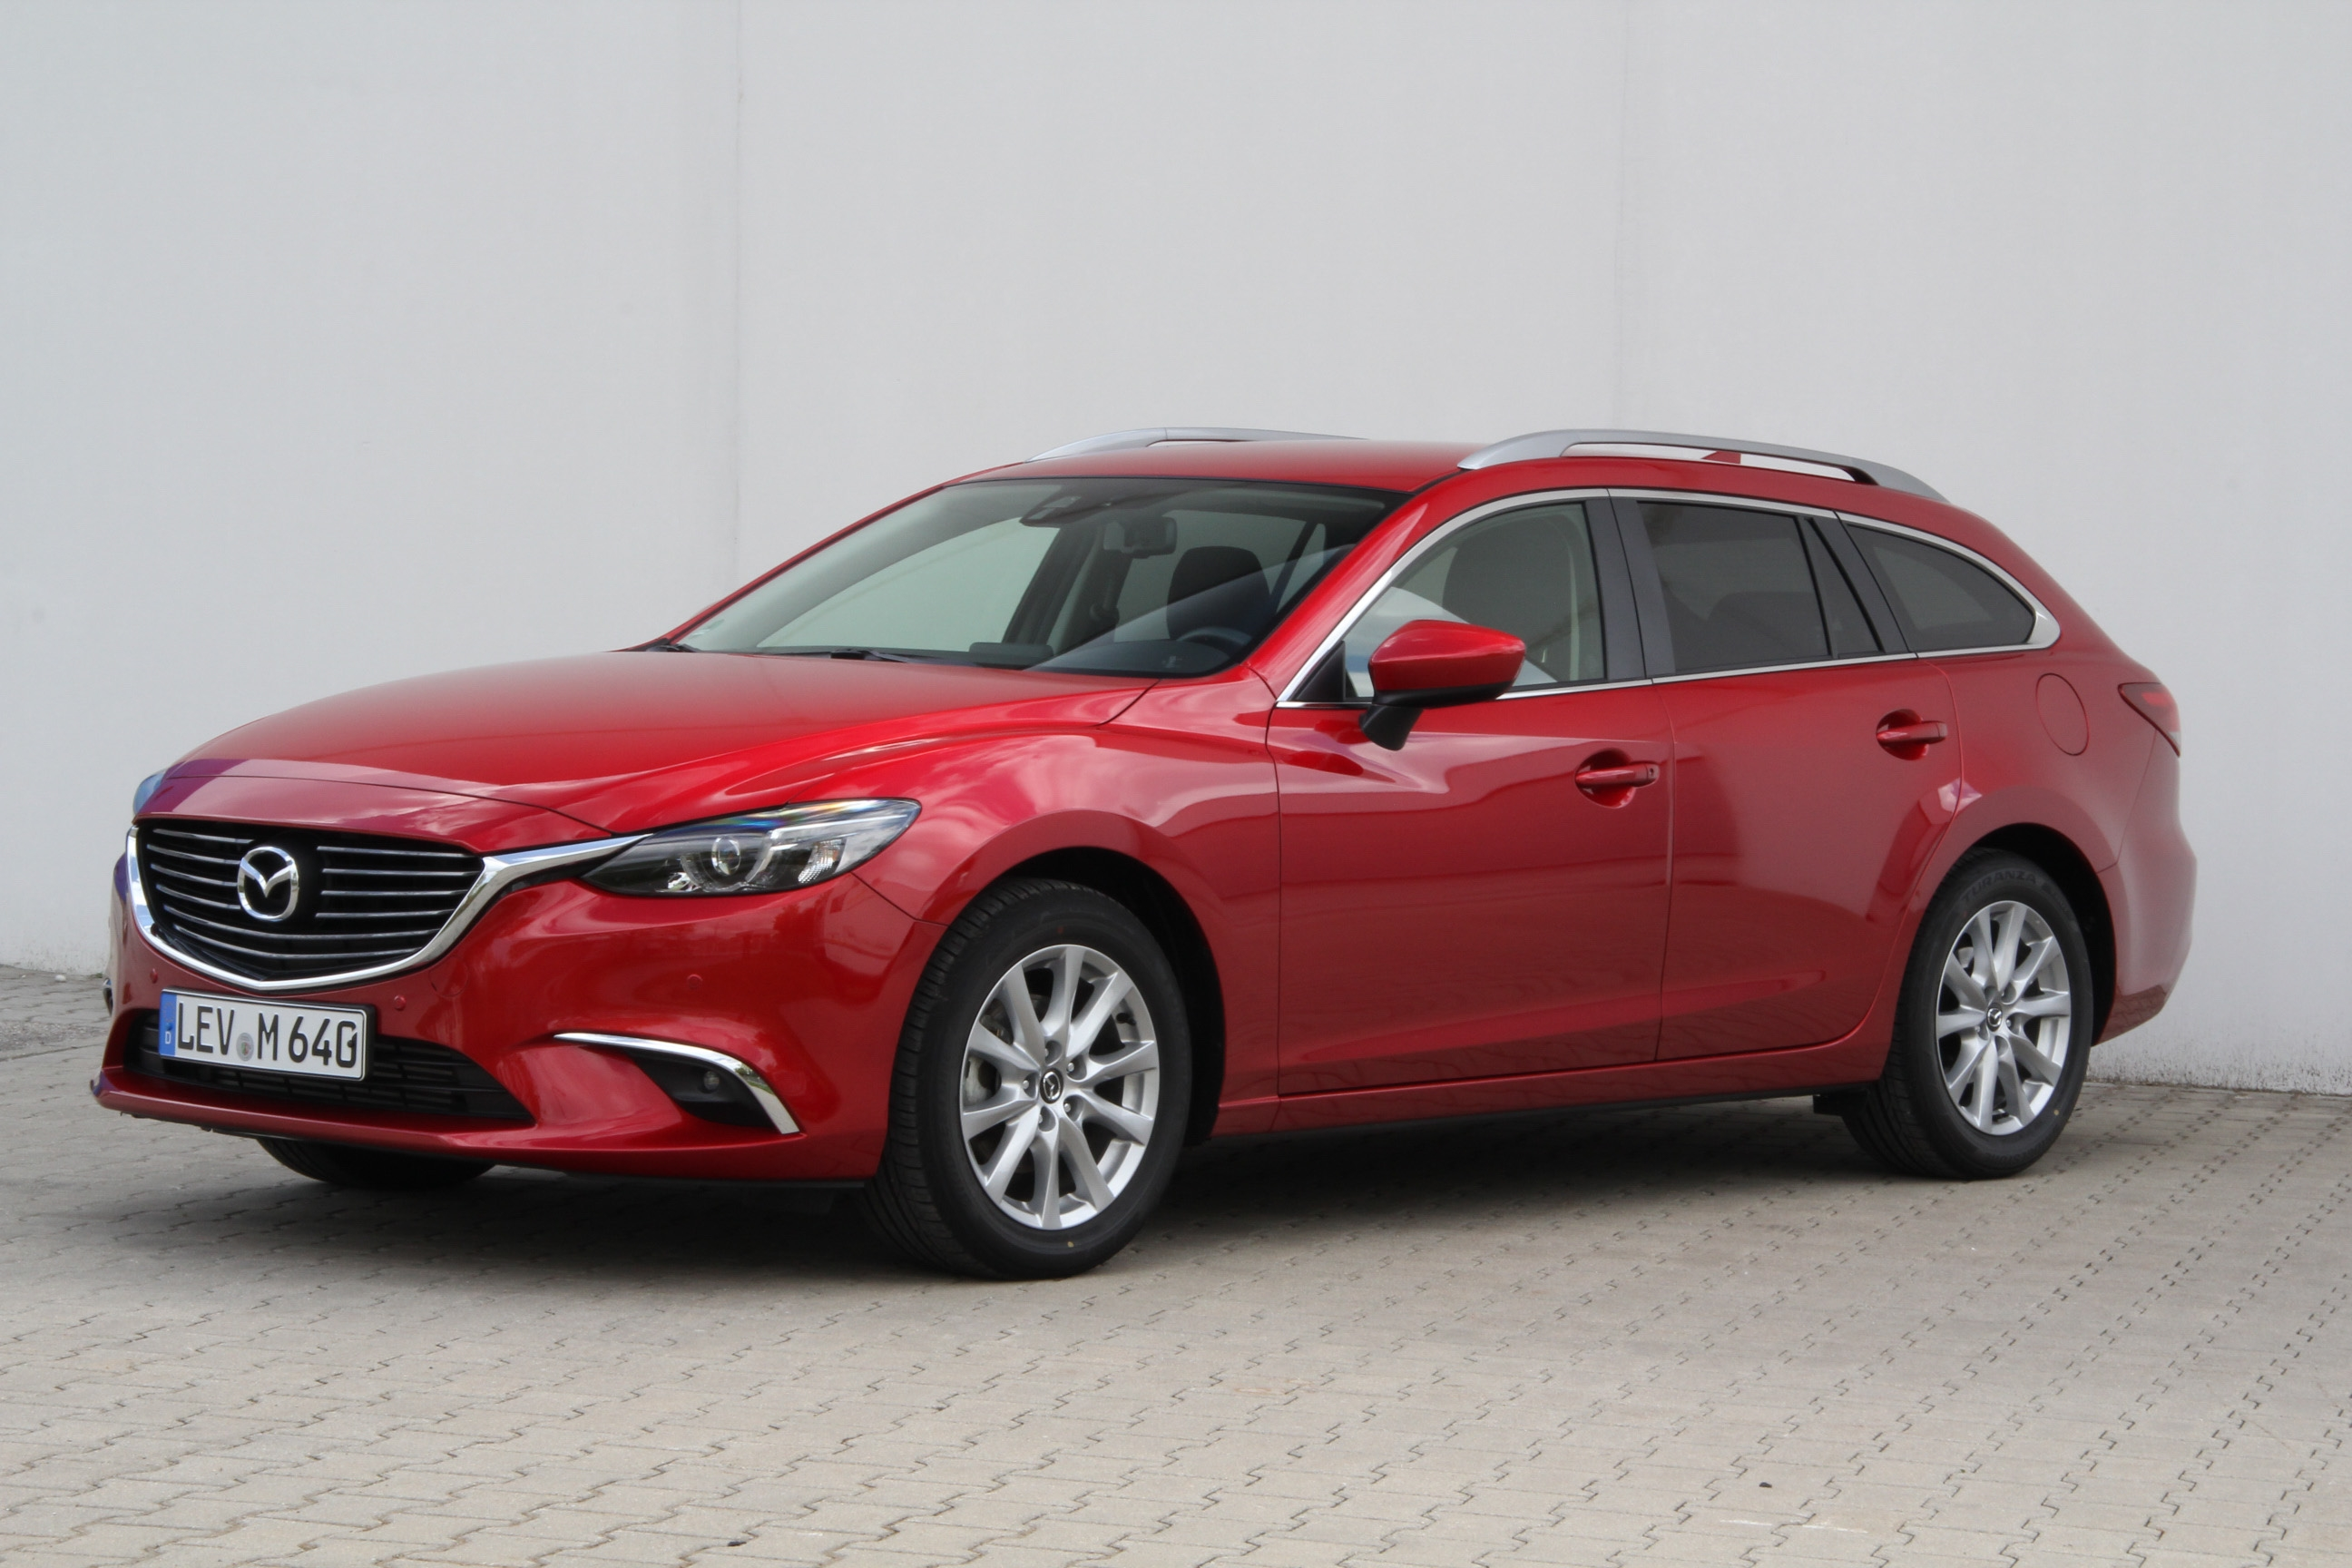 mazda 6 kombi skyactiv d 150 i eloop test prijzen en specificaties. Black Bedroom Furniture Sets. Home Design Ideas